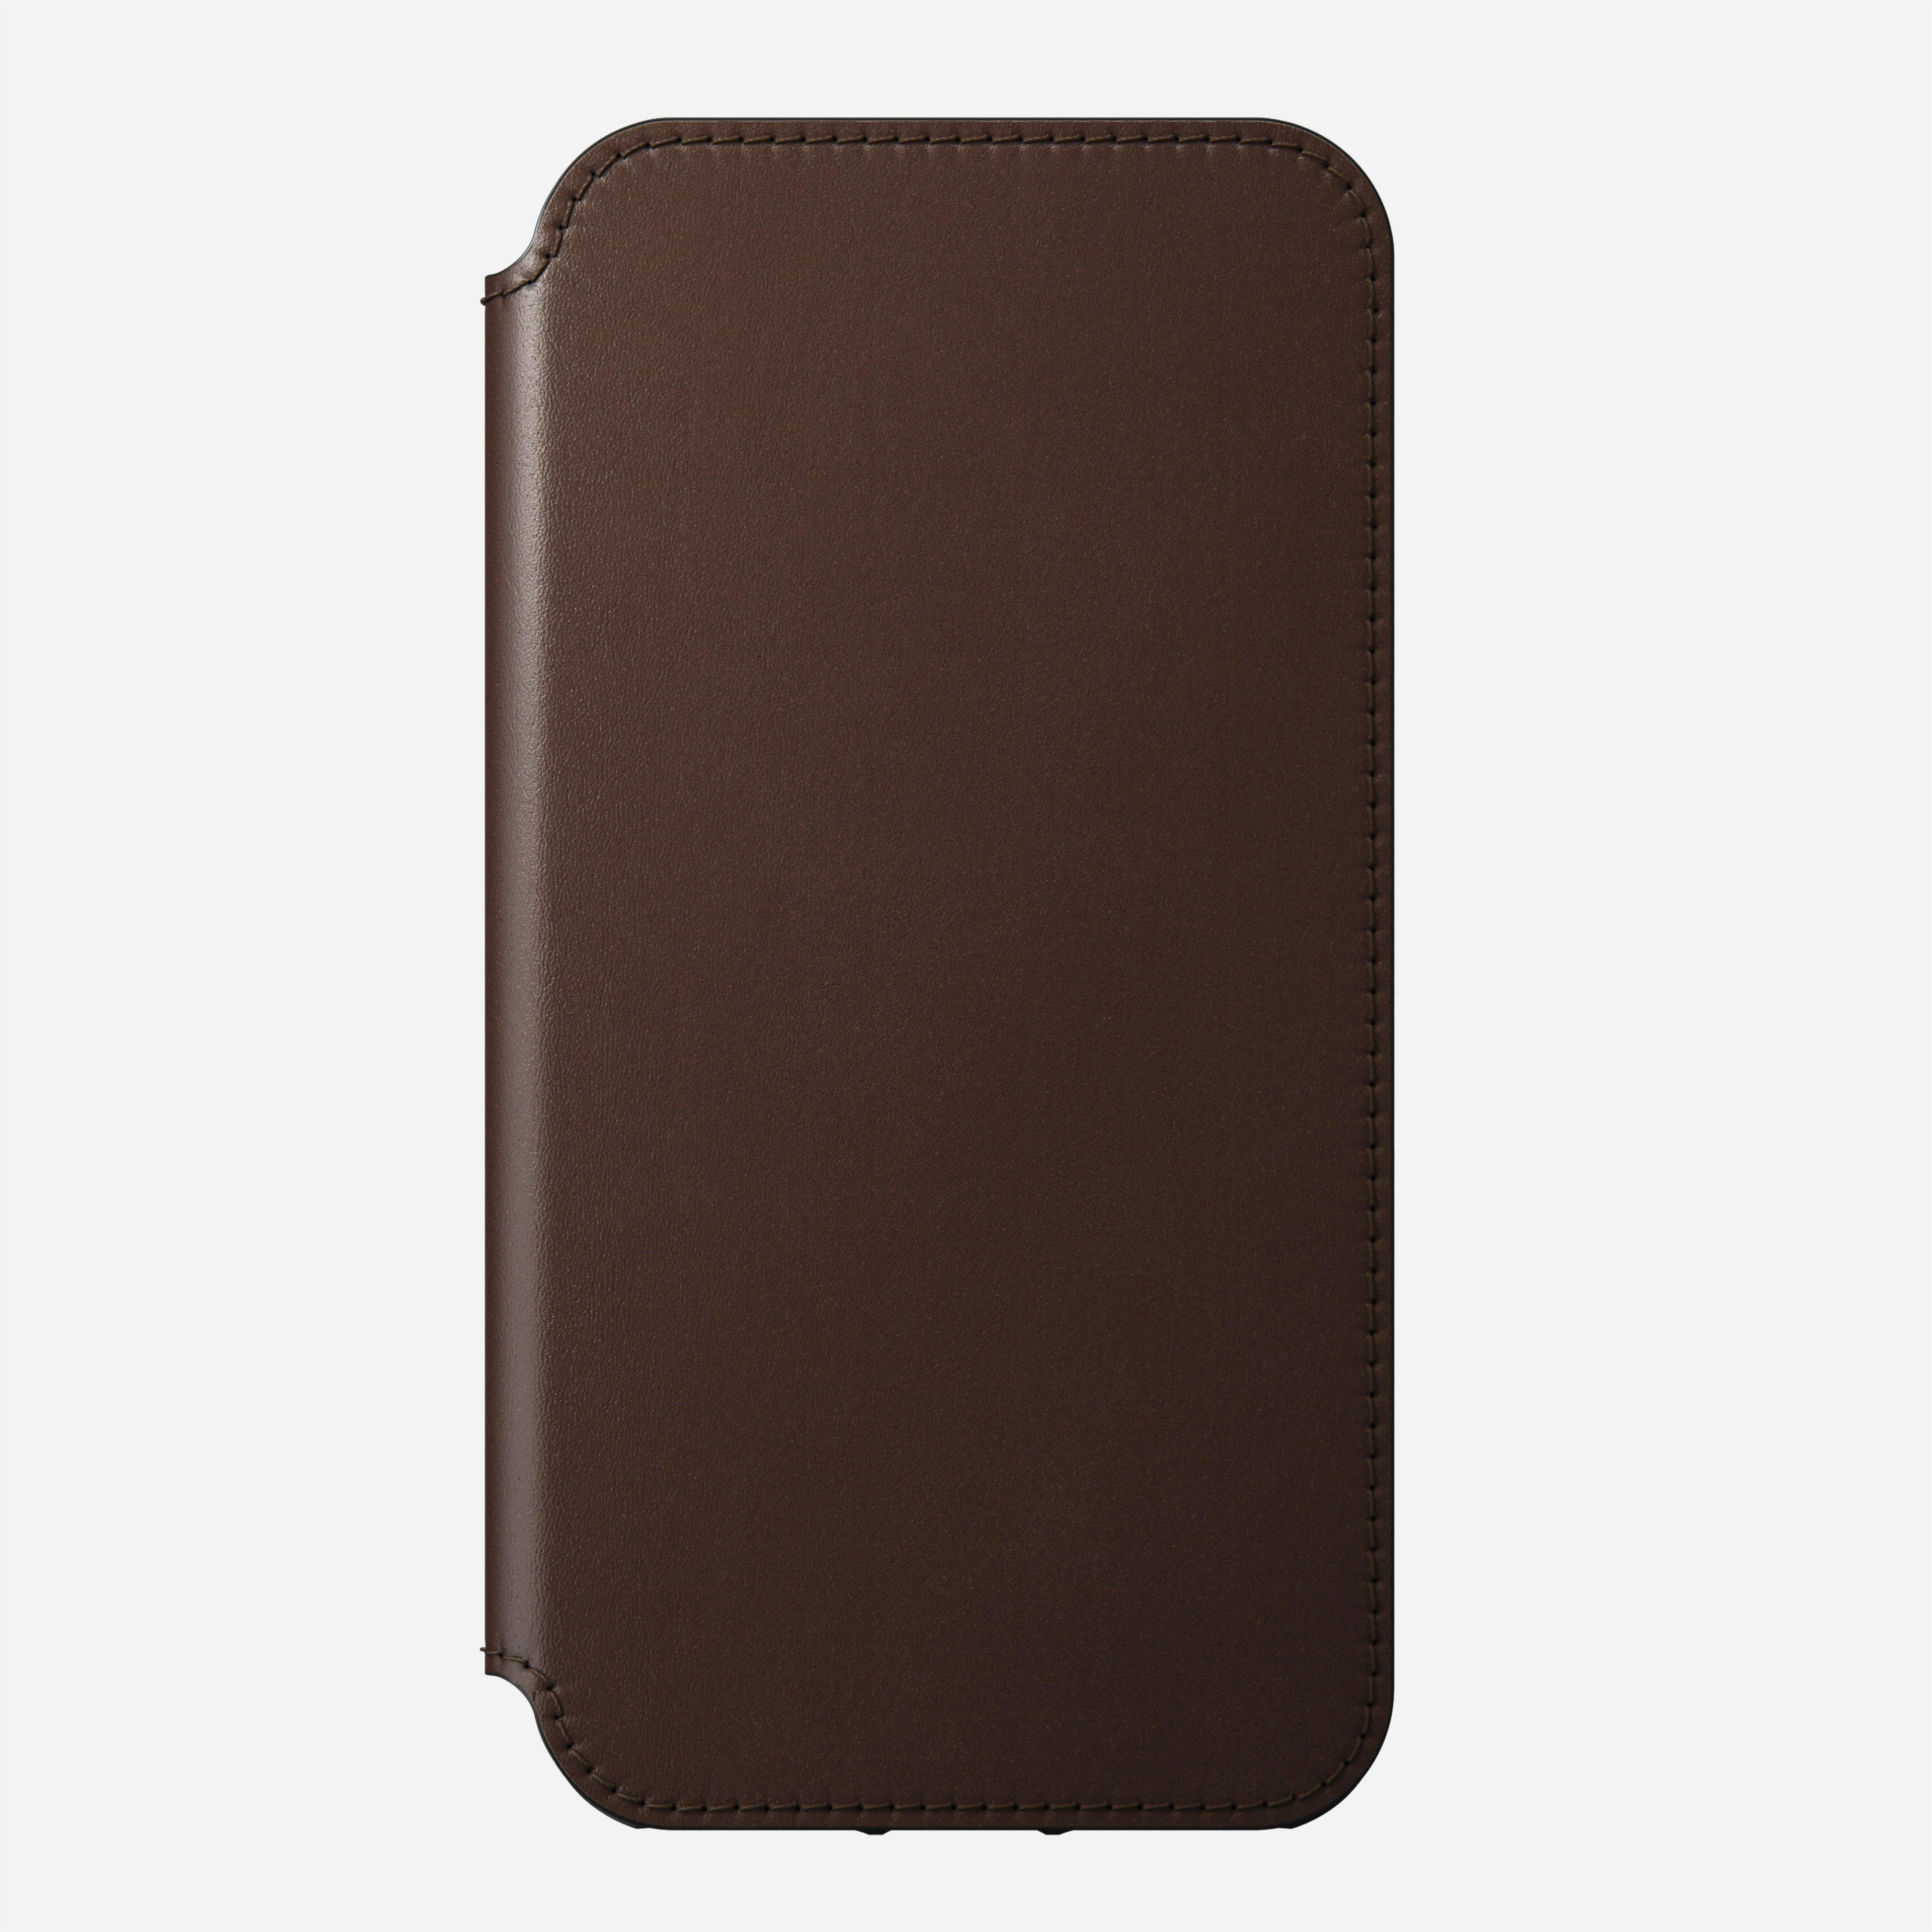 Rugged folio horween leather rustic brown iphone 12